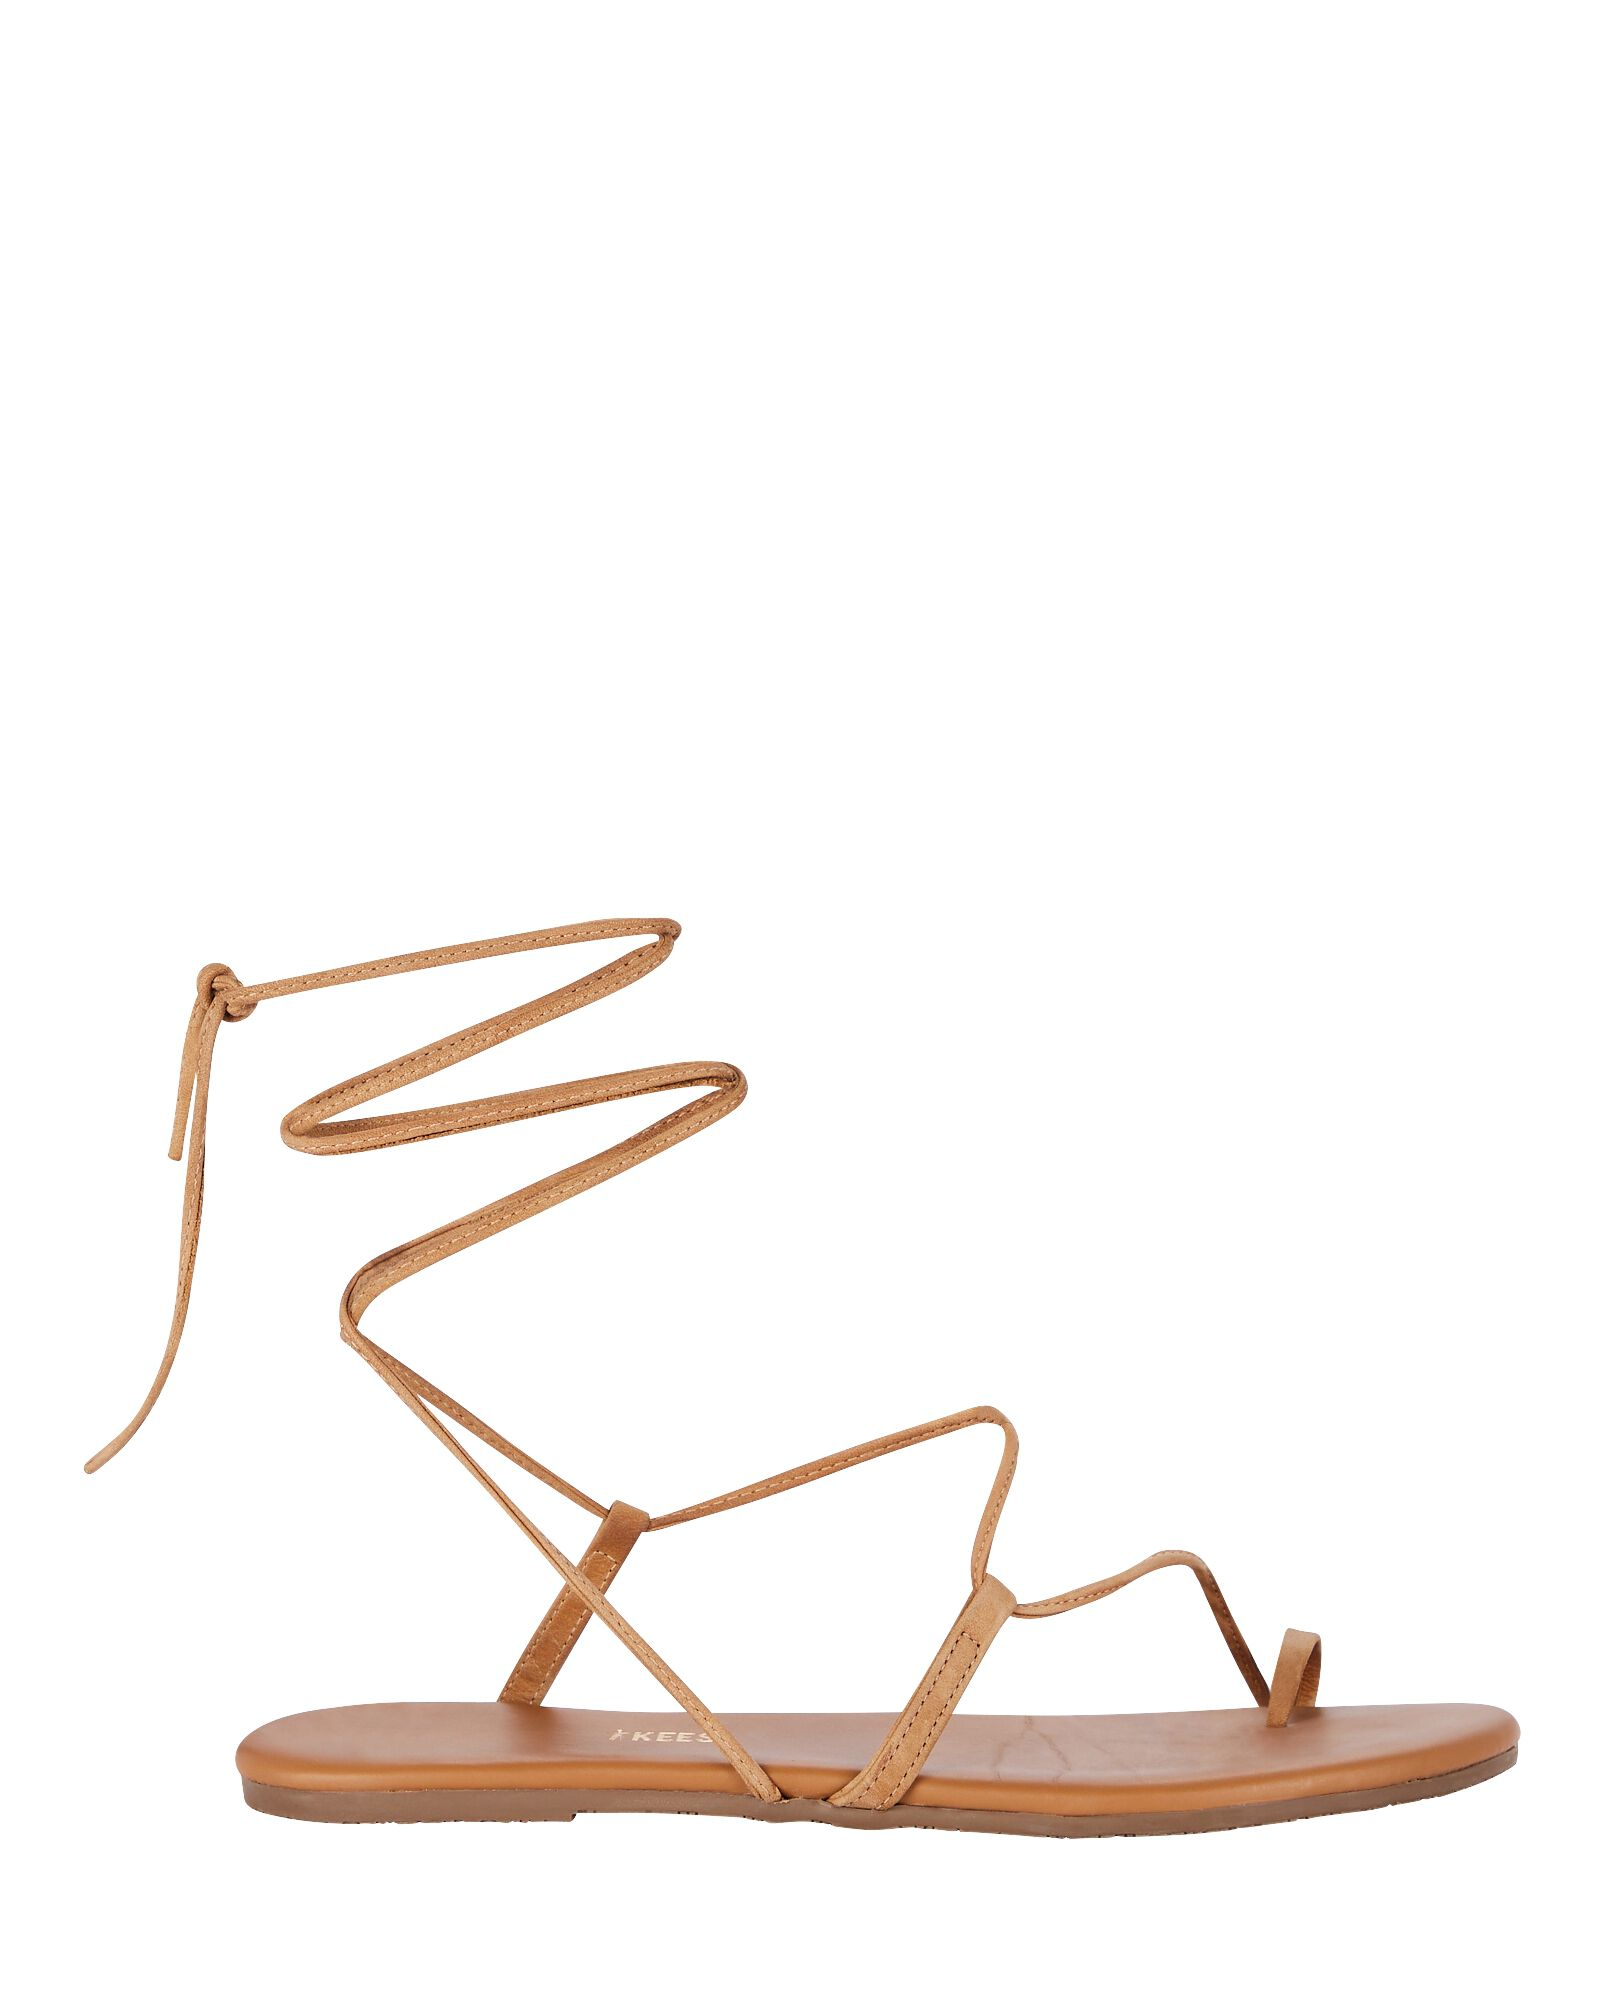 Jo Leather Lace-Up Sandals, LIGHT BROWN, hi-res